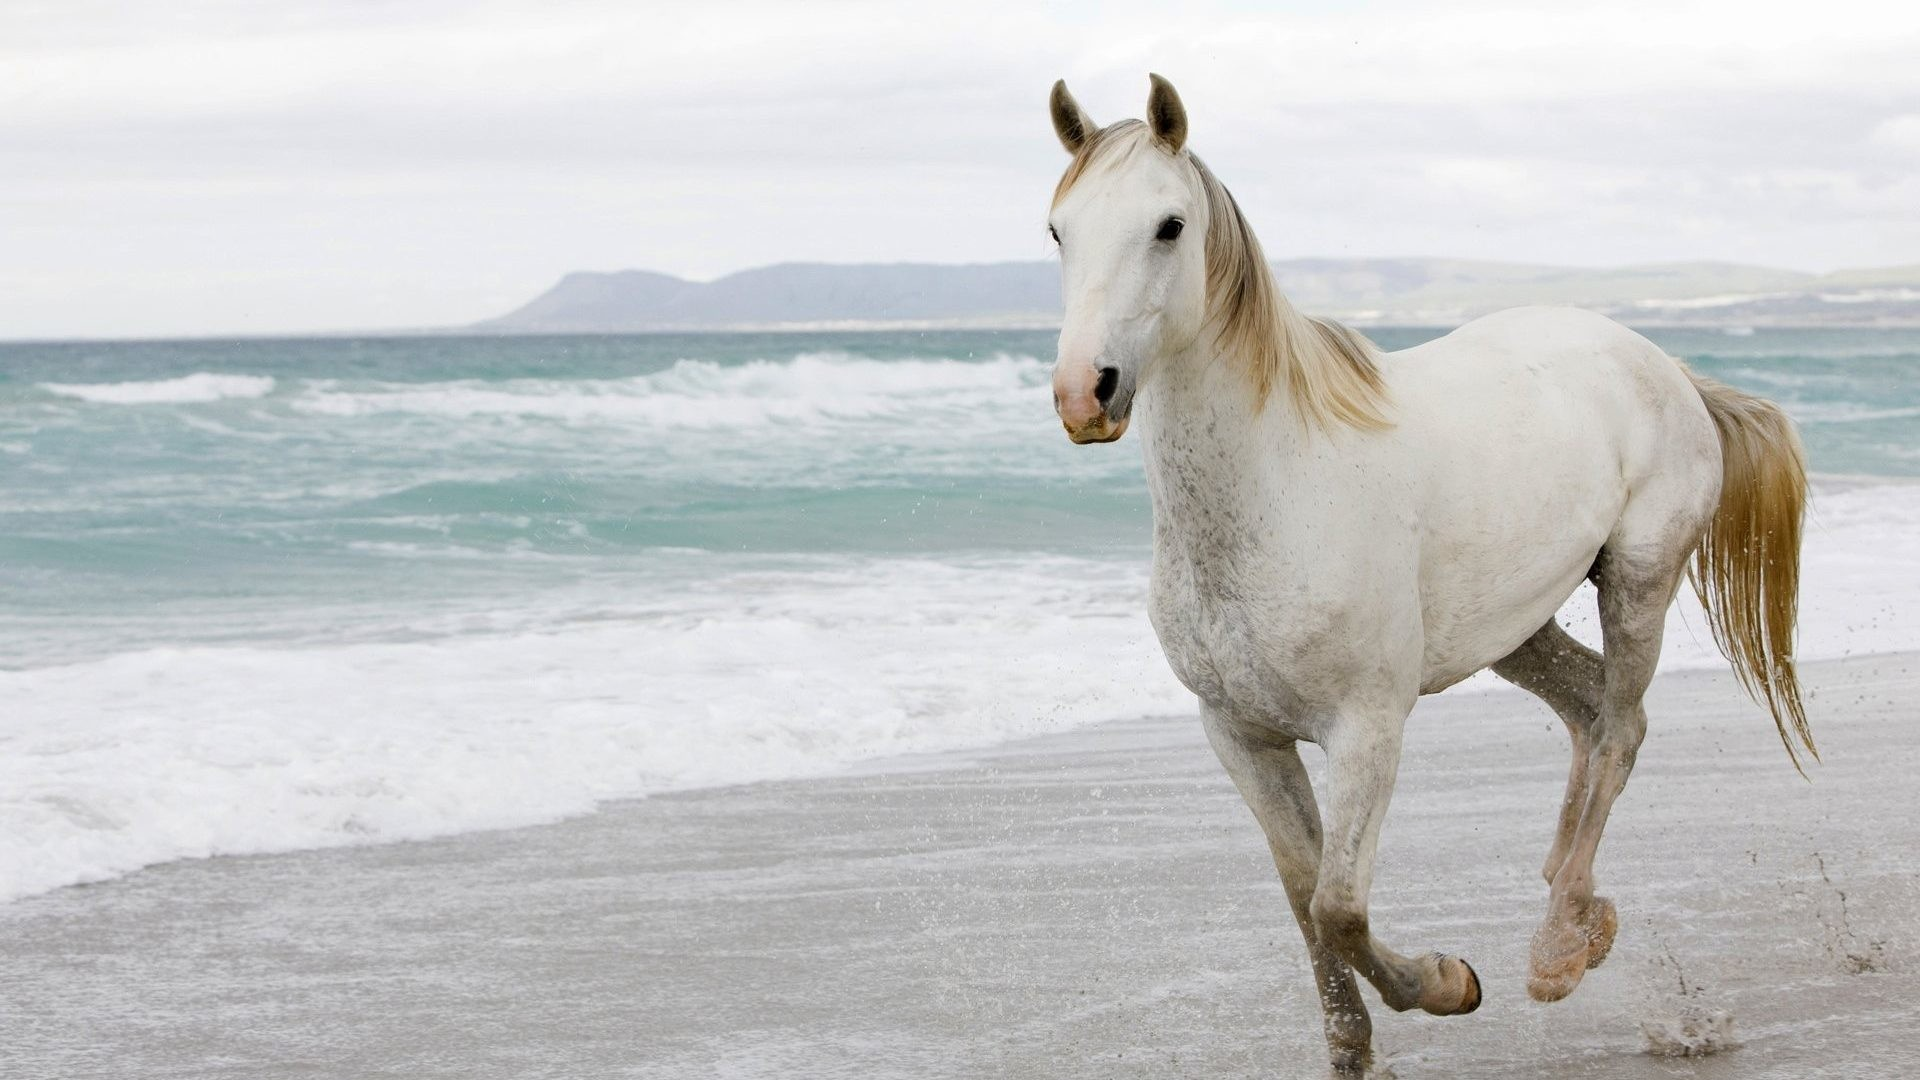 Res: 1920x1080, Waves Tag - Waves Canter Cloudy Gallop Horse Surf Beach Sea Funny Photos By  Animals for